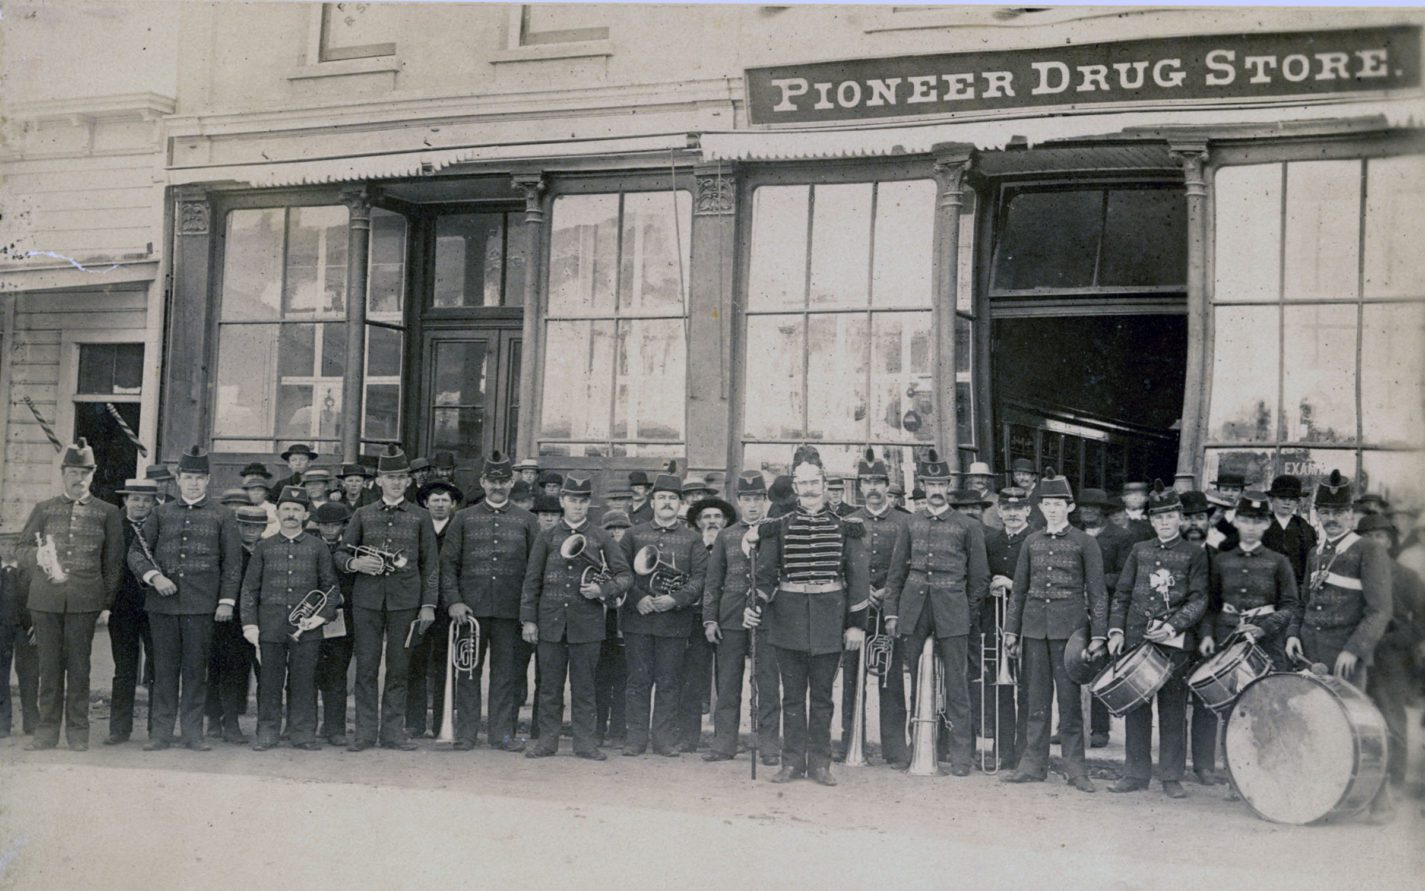 Marching band in front of the Pioneer Drug Store in Redwood City circa 1880s